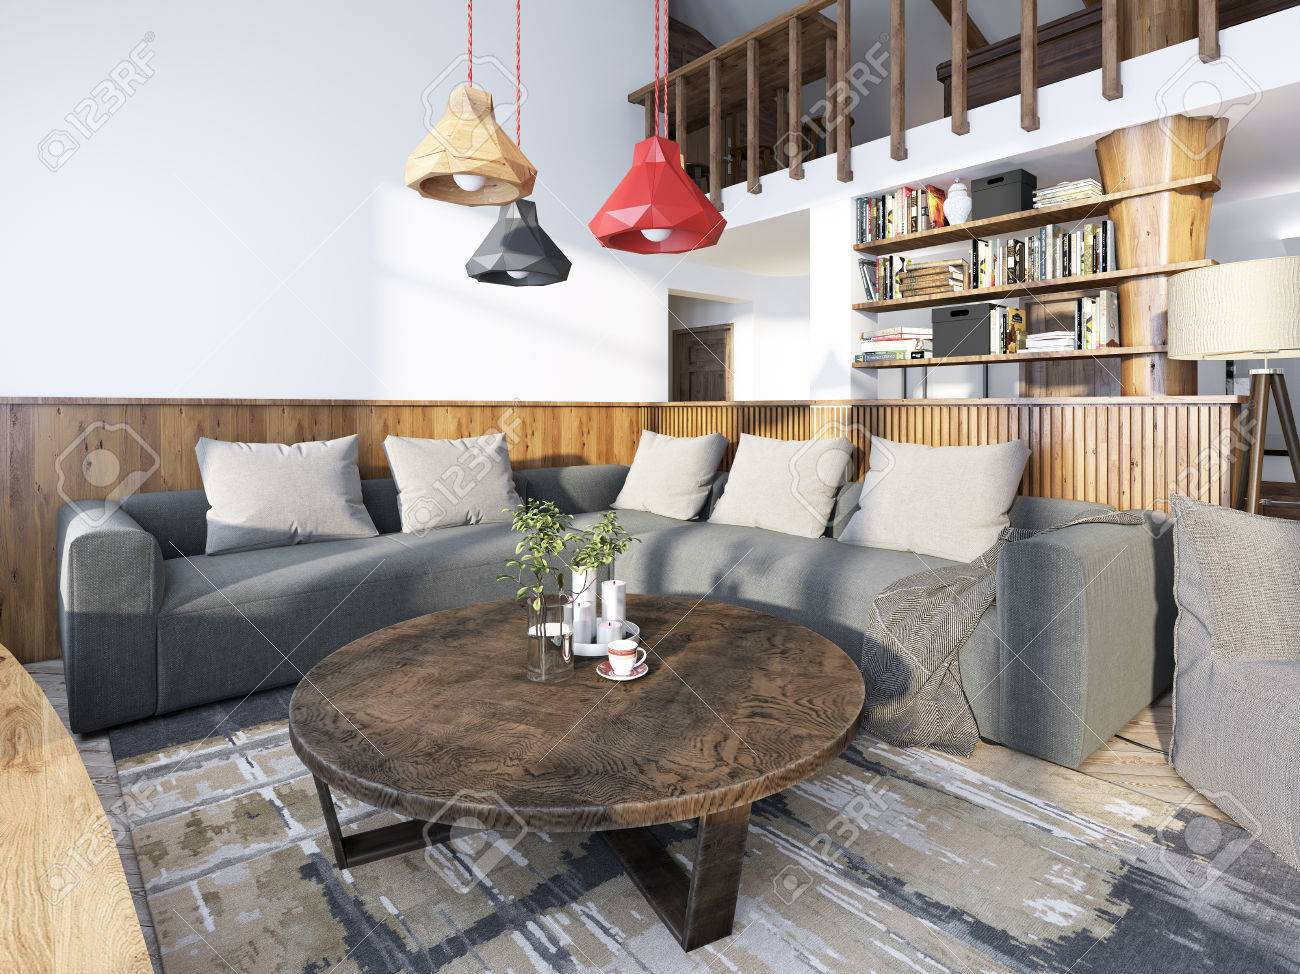 Superbe Large Corner Sofa In The Living Room Luxury Loft Style, With Wood Paneled  Walls And